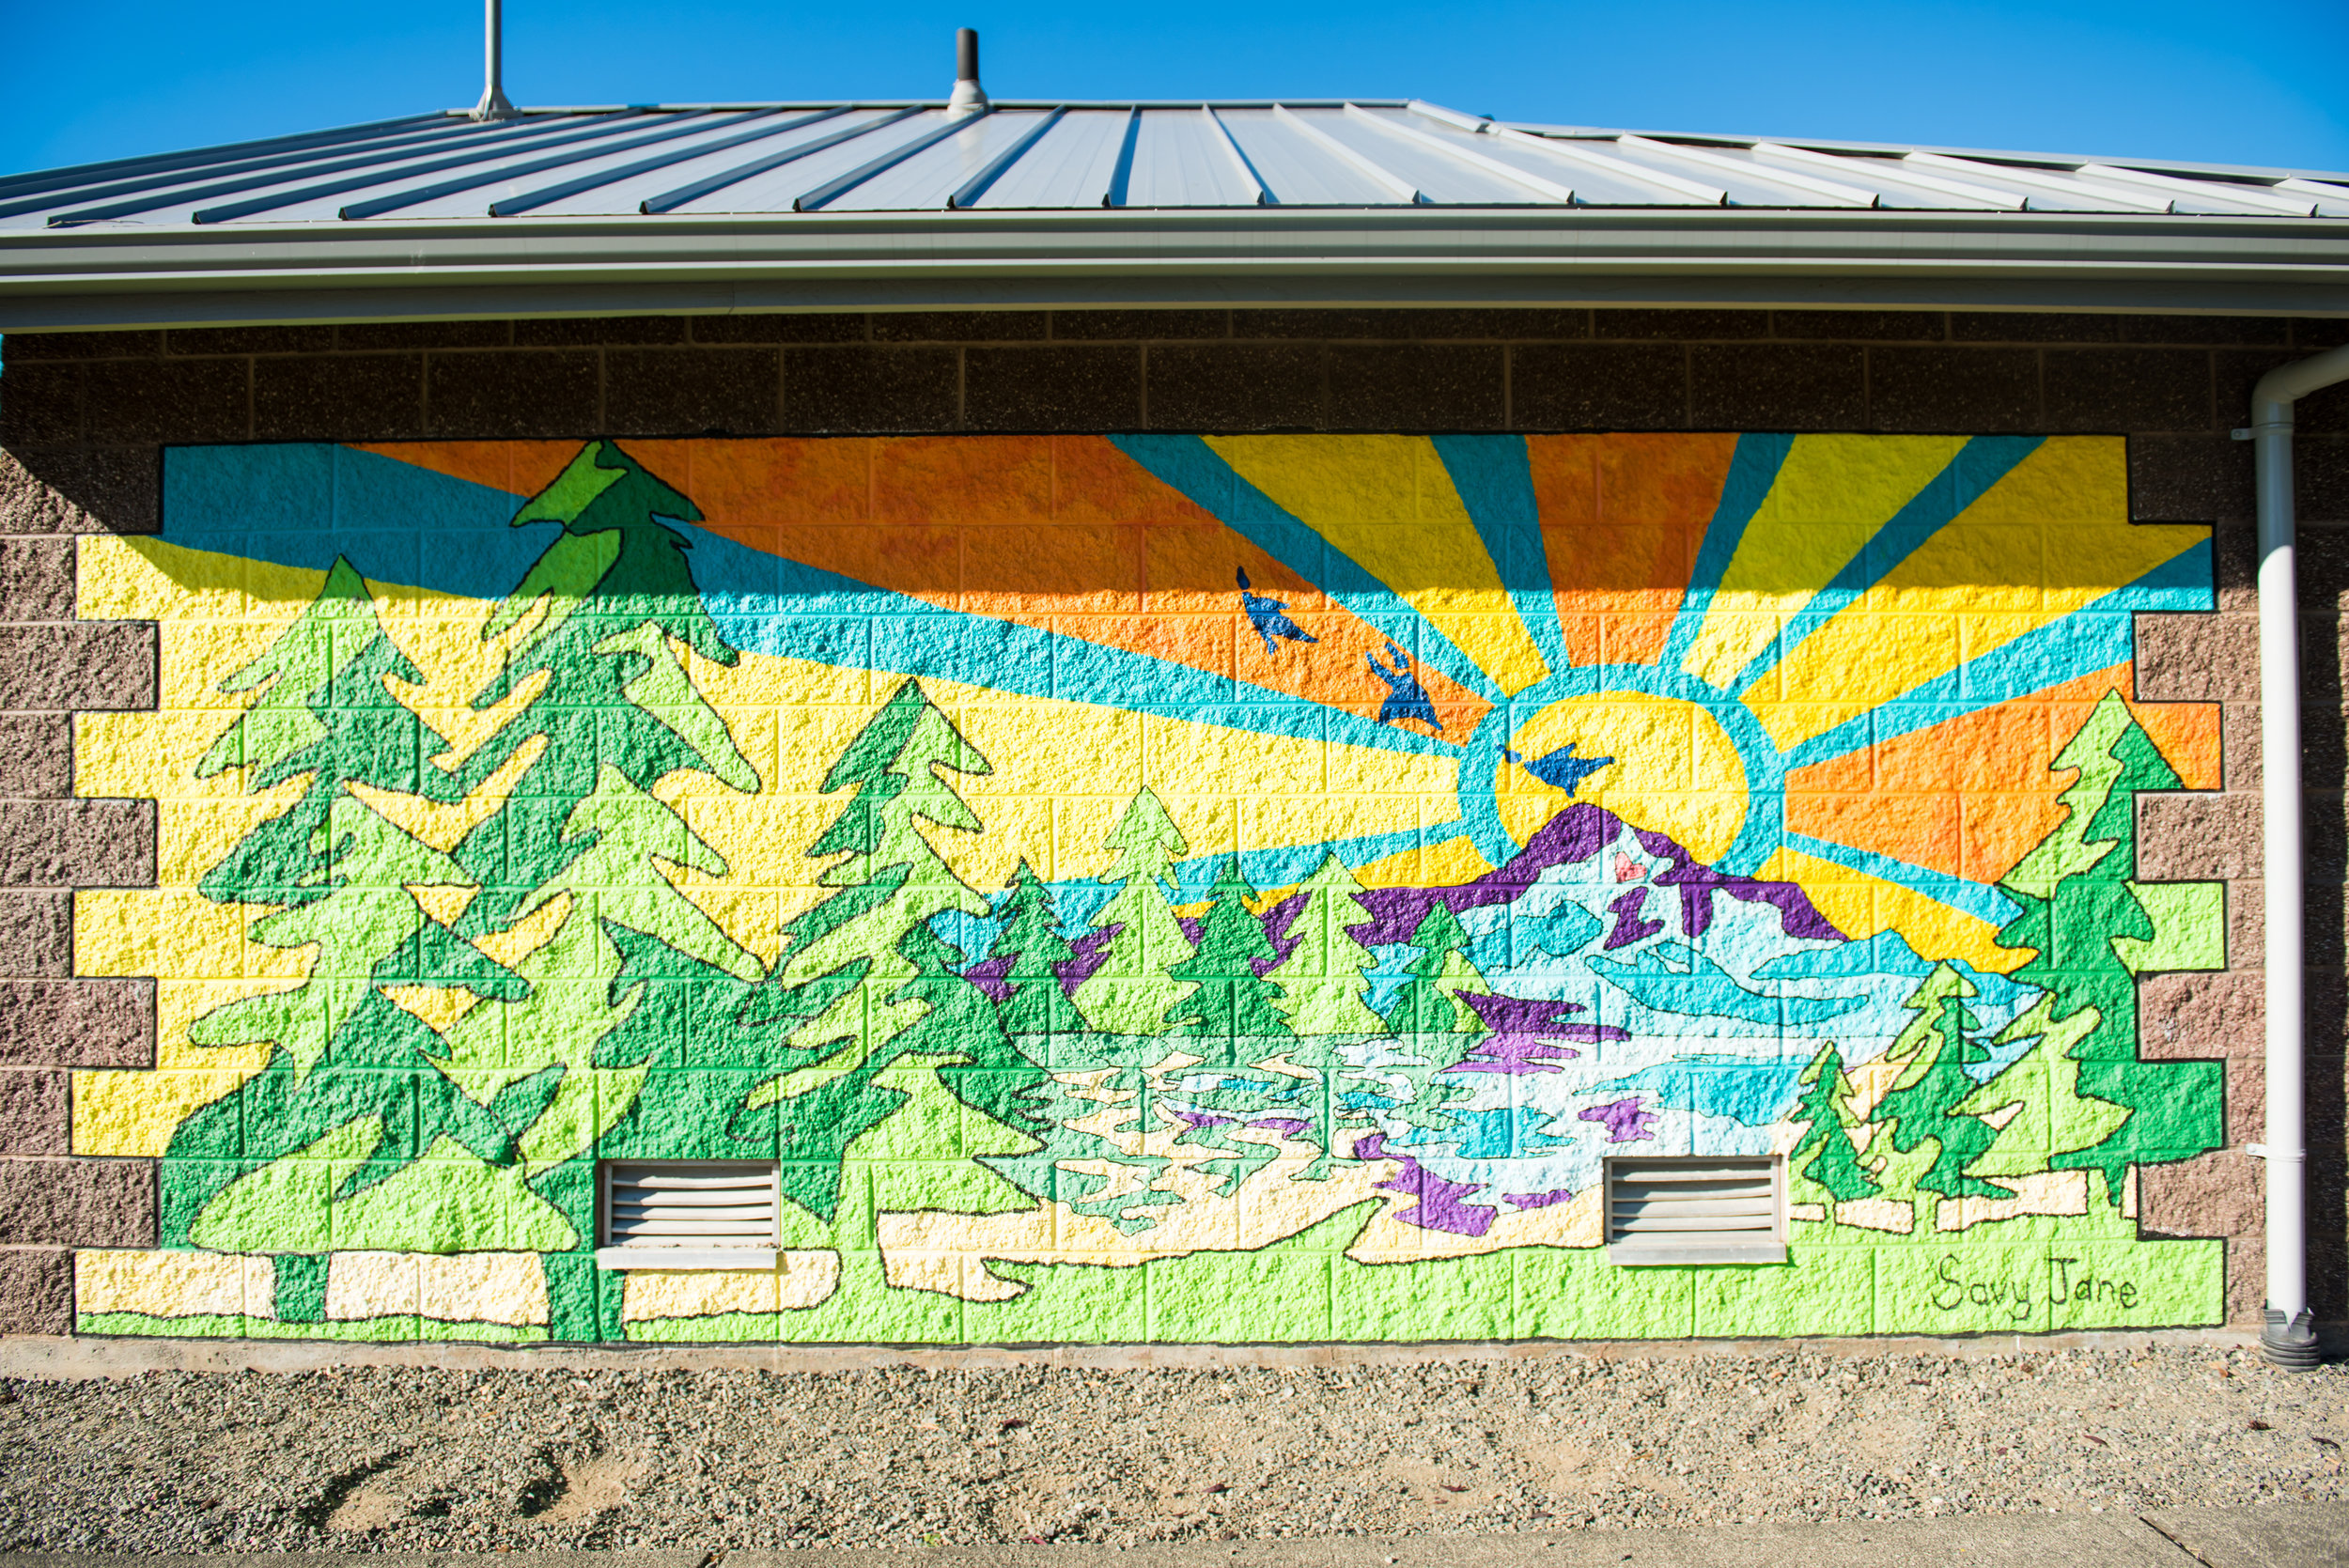 """Abundance of Light""; City of Bonney Lake; 12x6'; Completed 2015"